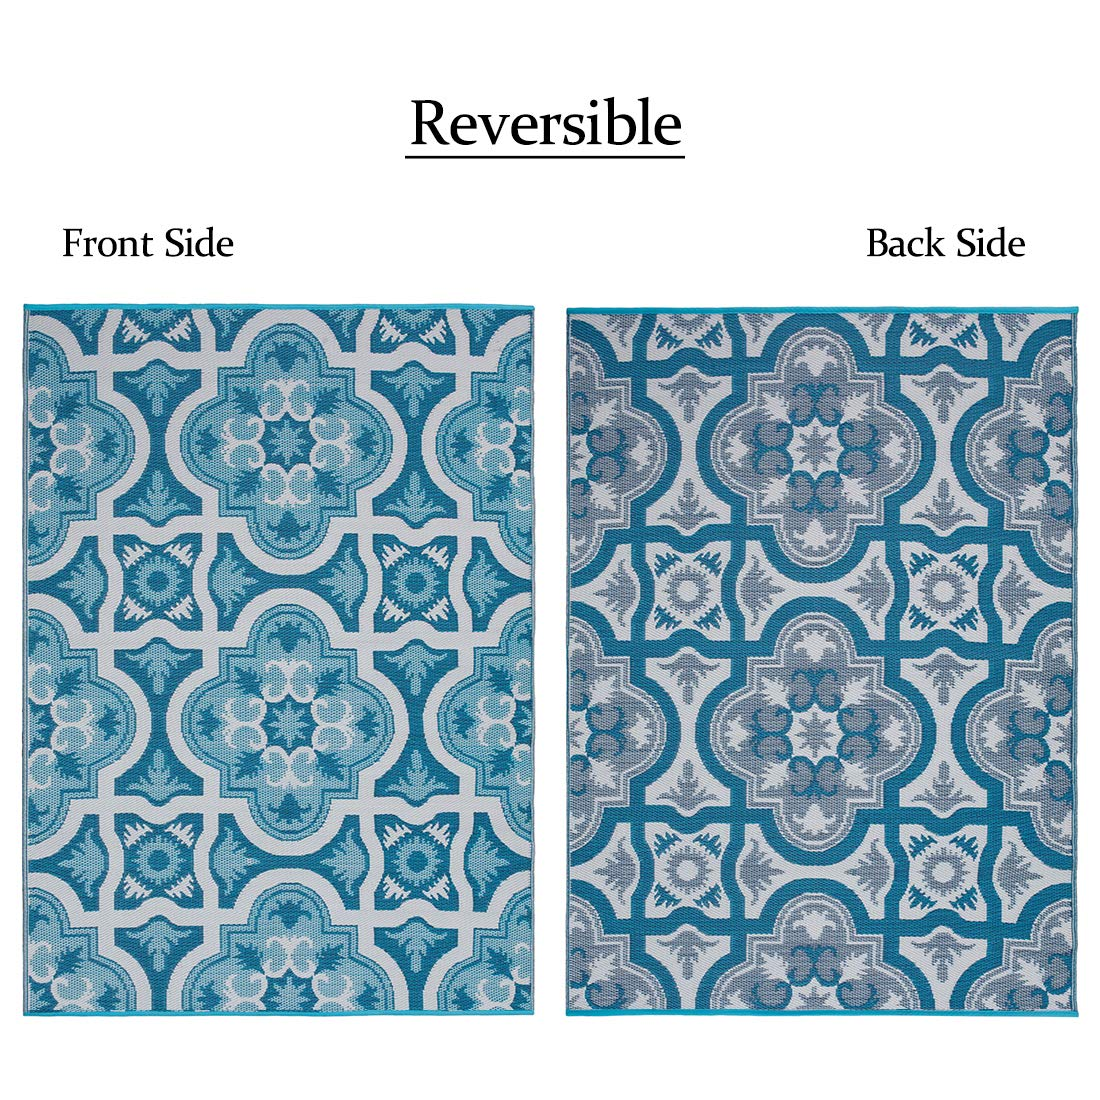 Reversible rug with different colors on each side.